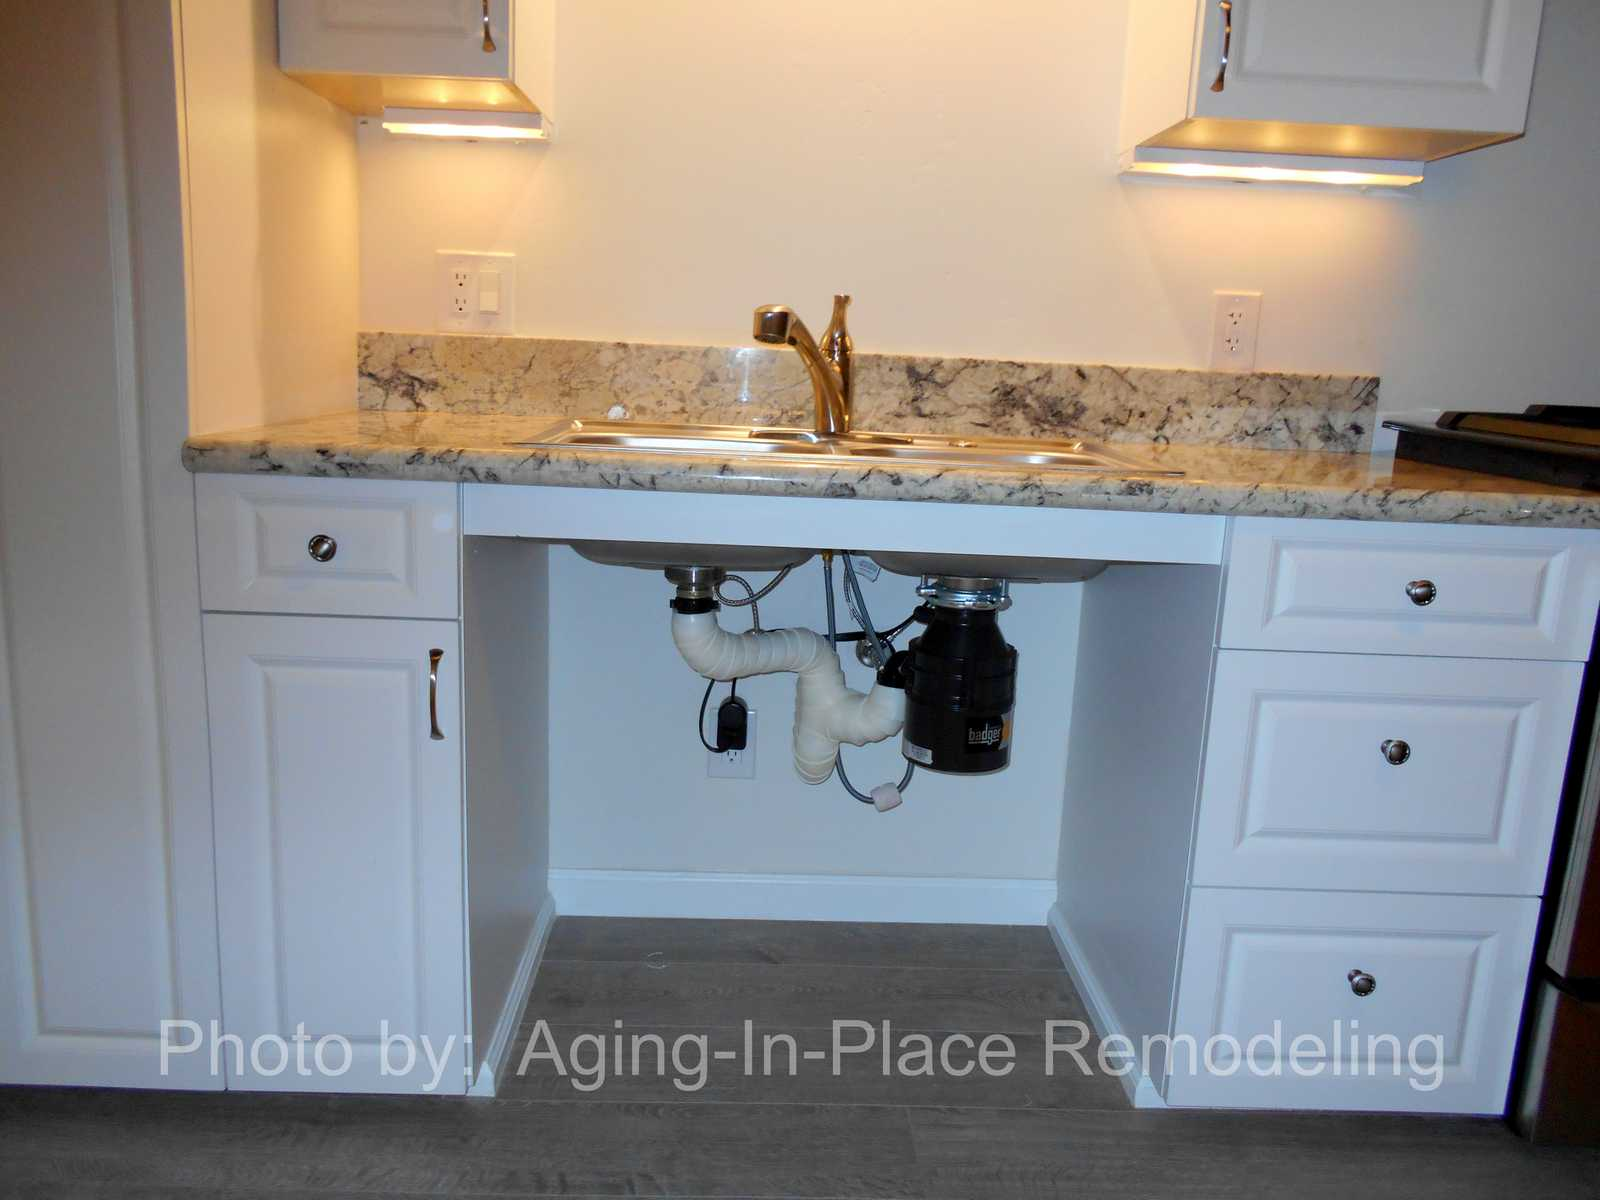 Accessible Sinks - Aging in Place Remodeling